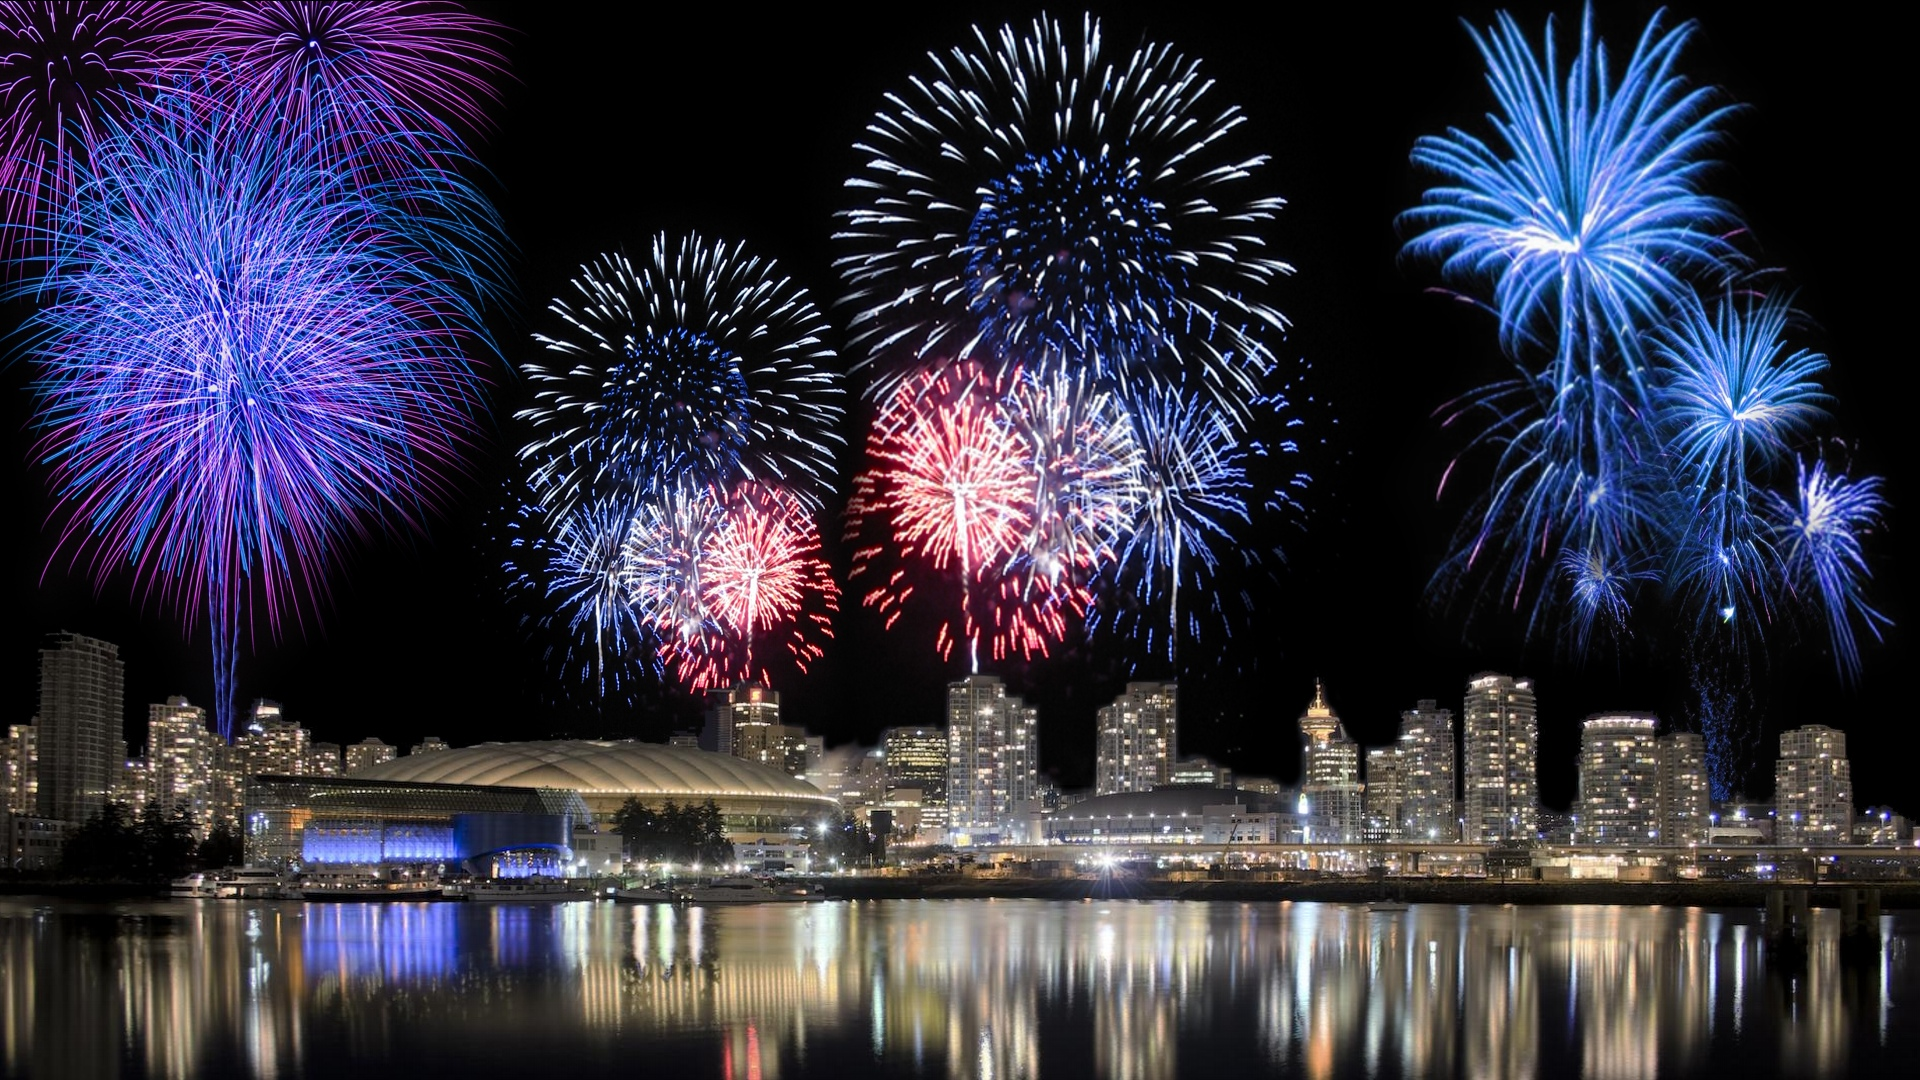 Download Animated Fireworks Background HD pictures in high definition 1920x1080